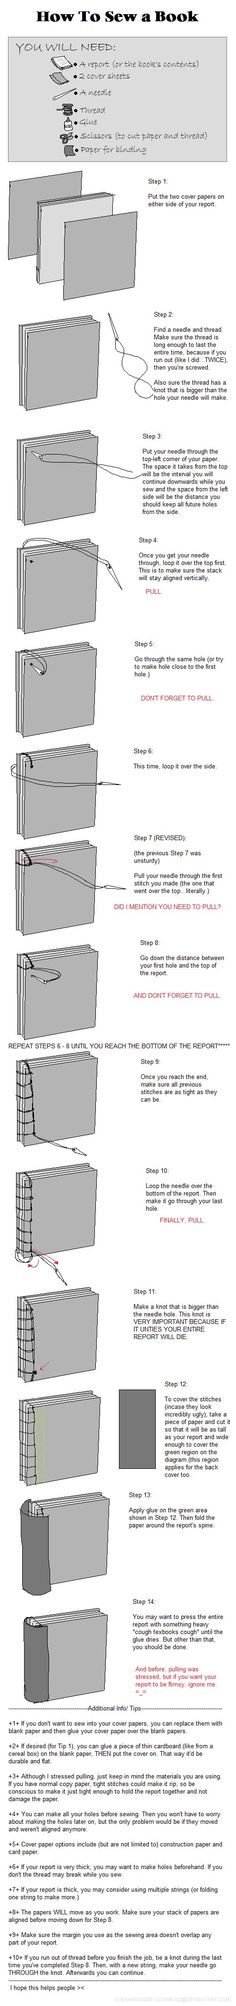 How to Sew a Book + Report by Jounin-SZ